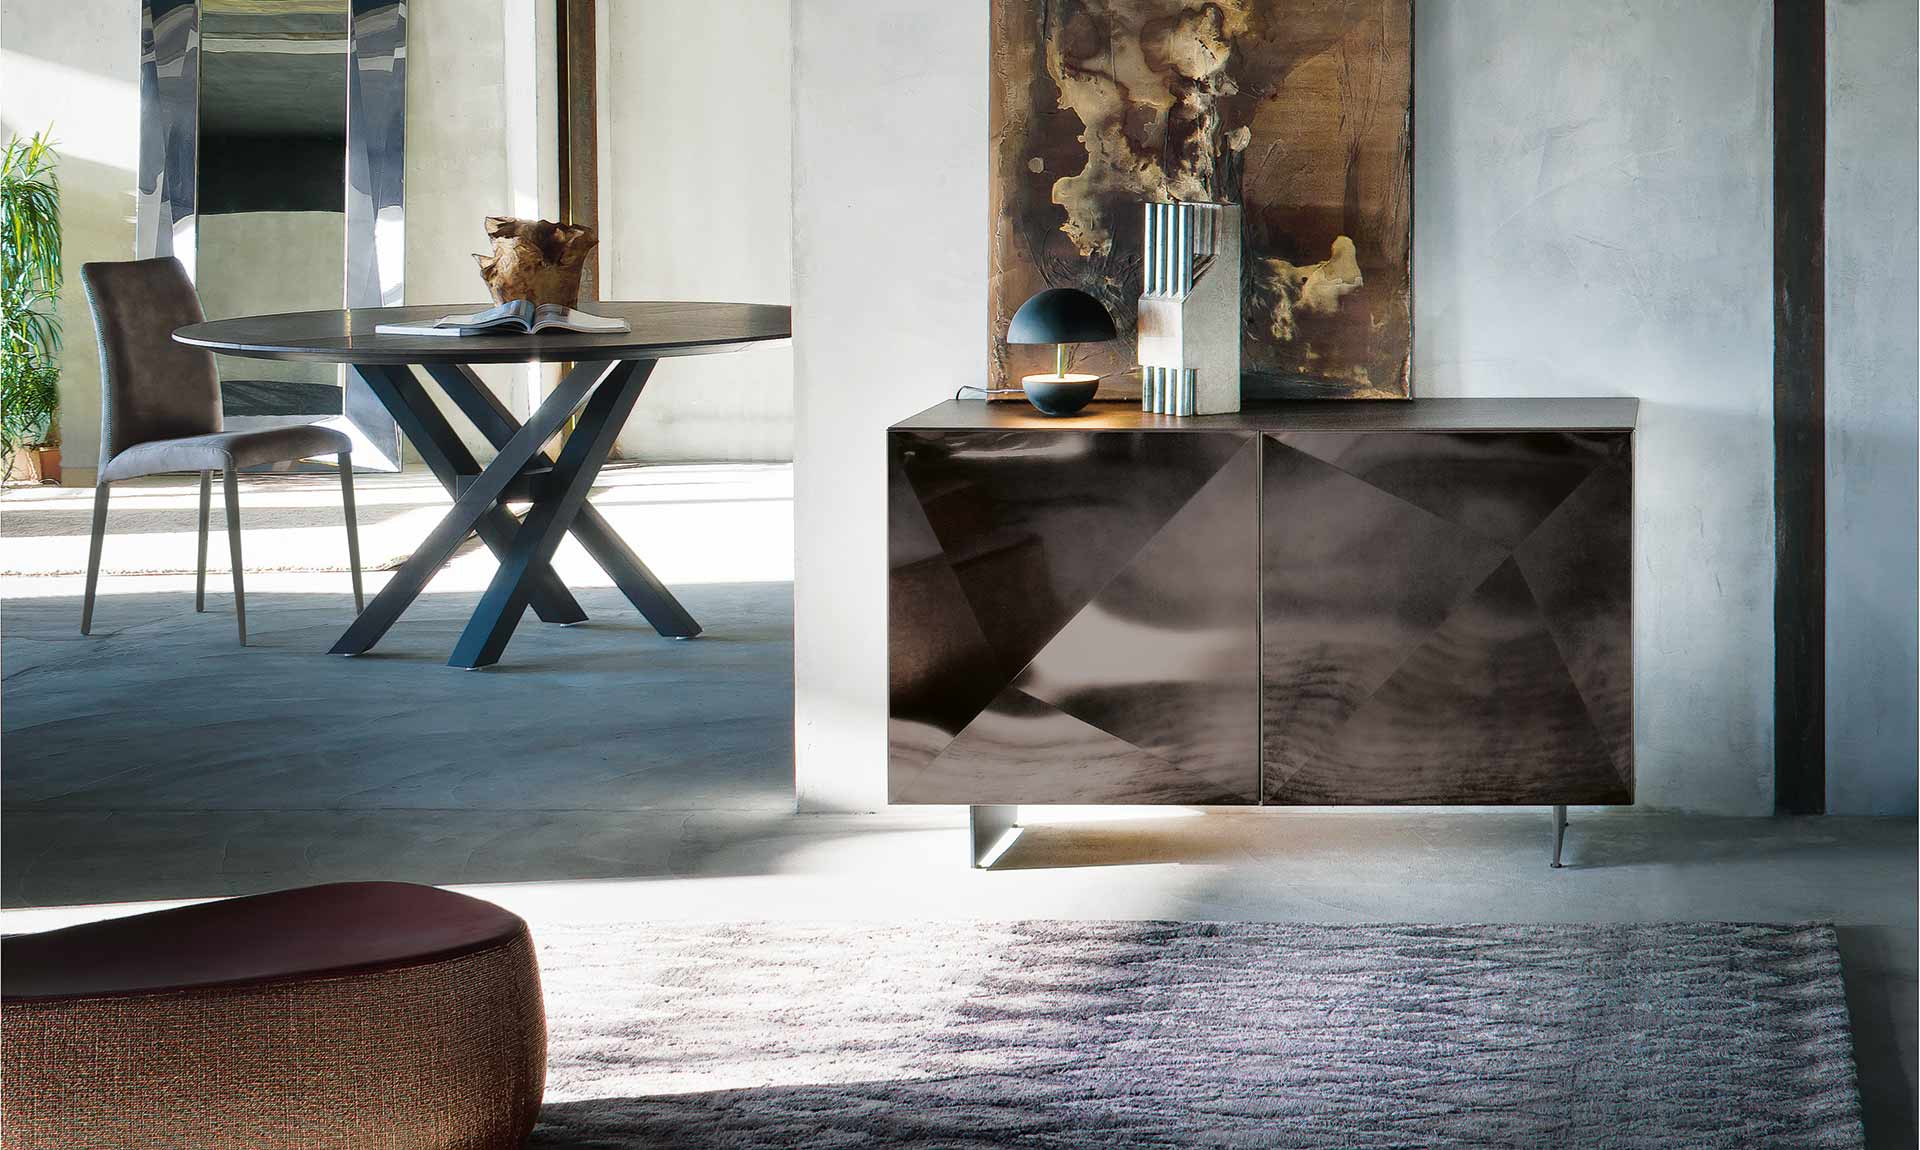 Italian Design Modern sideboard CUBRIC steel diamond by Riflessi-titane